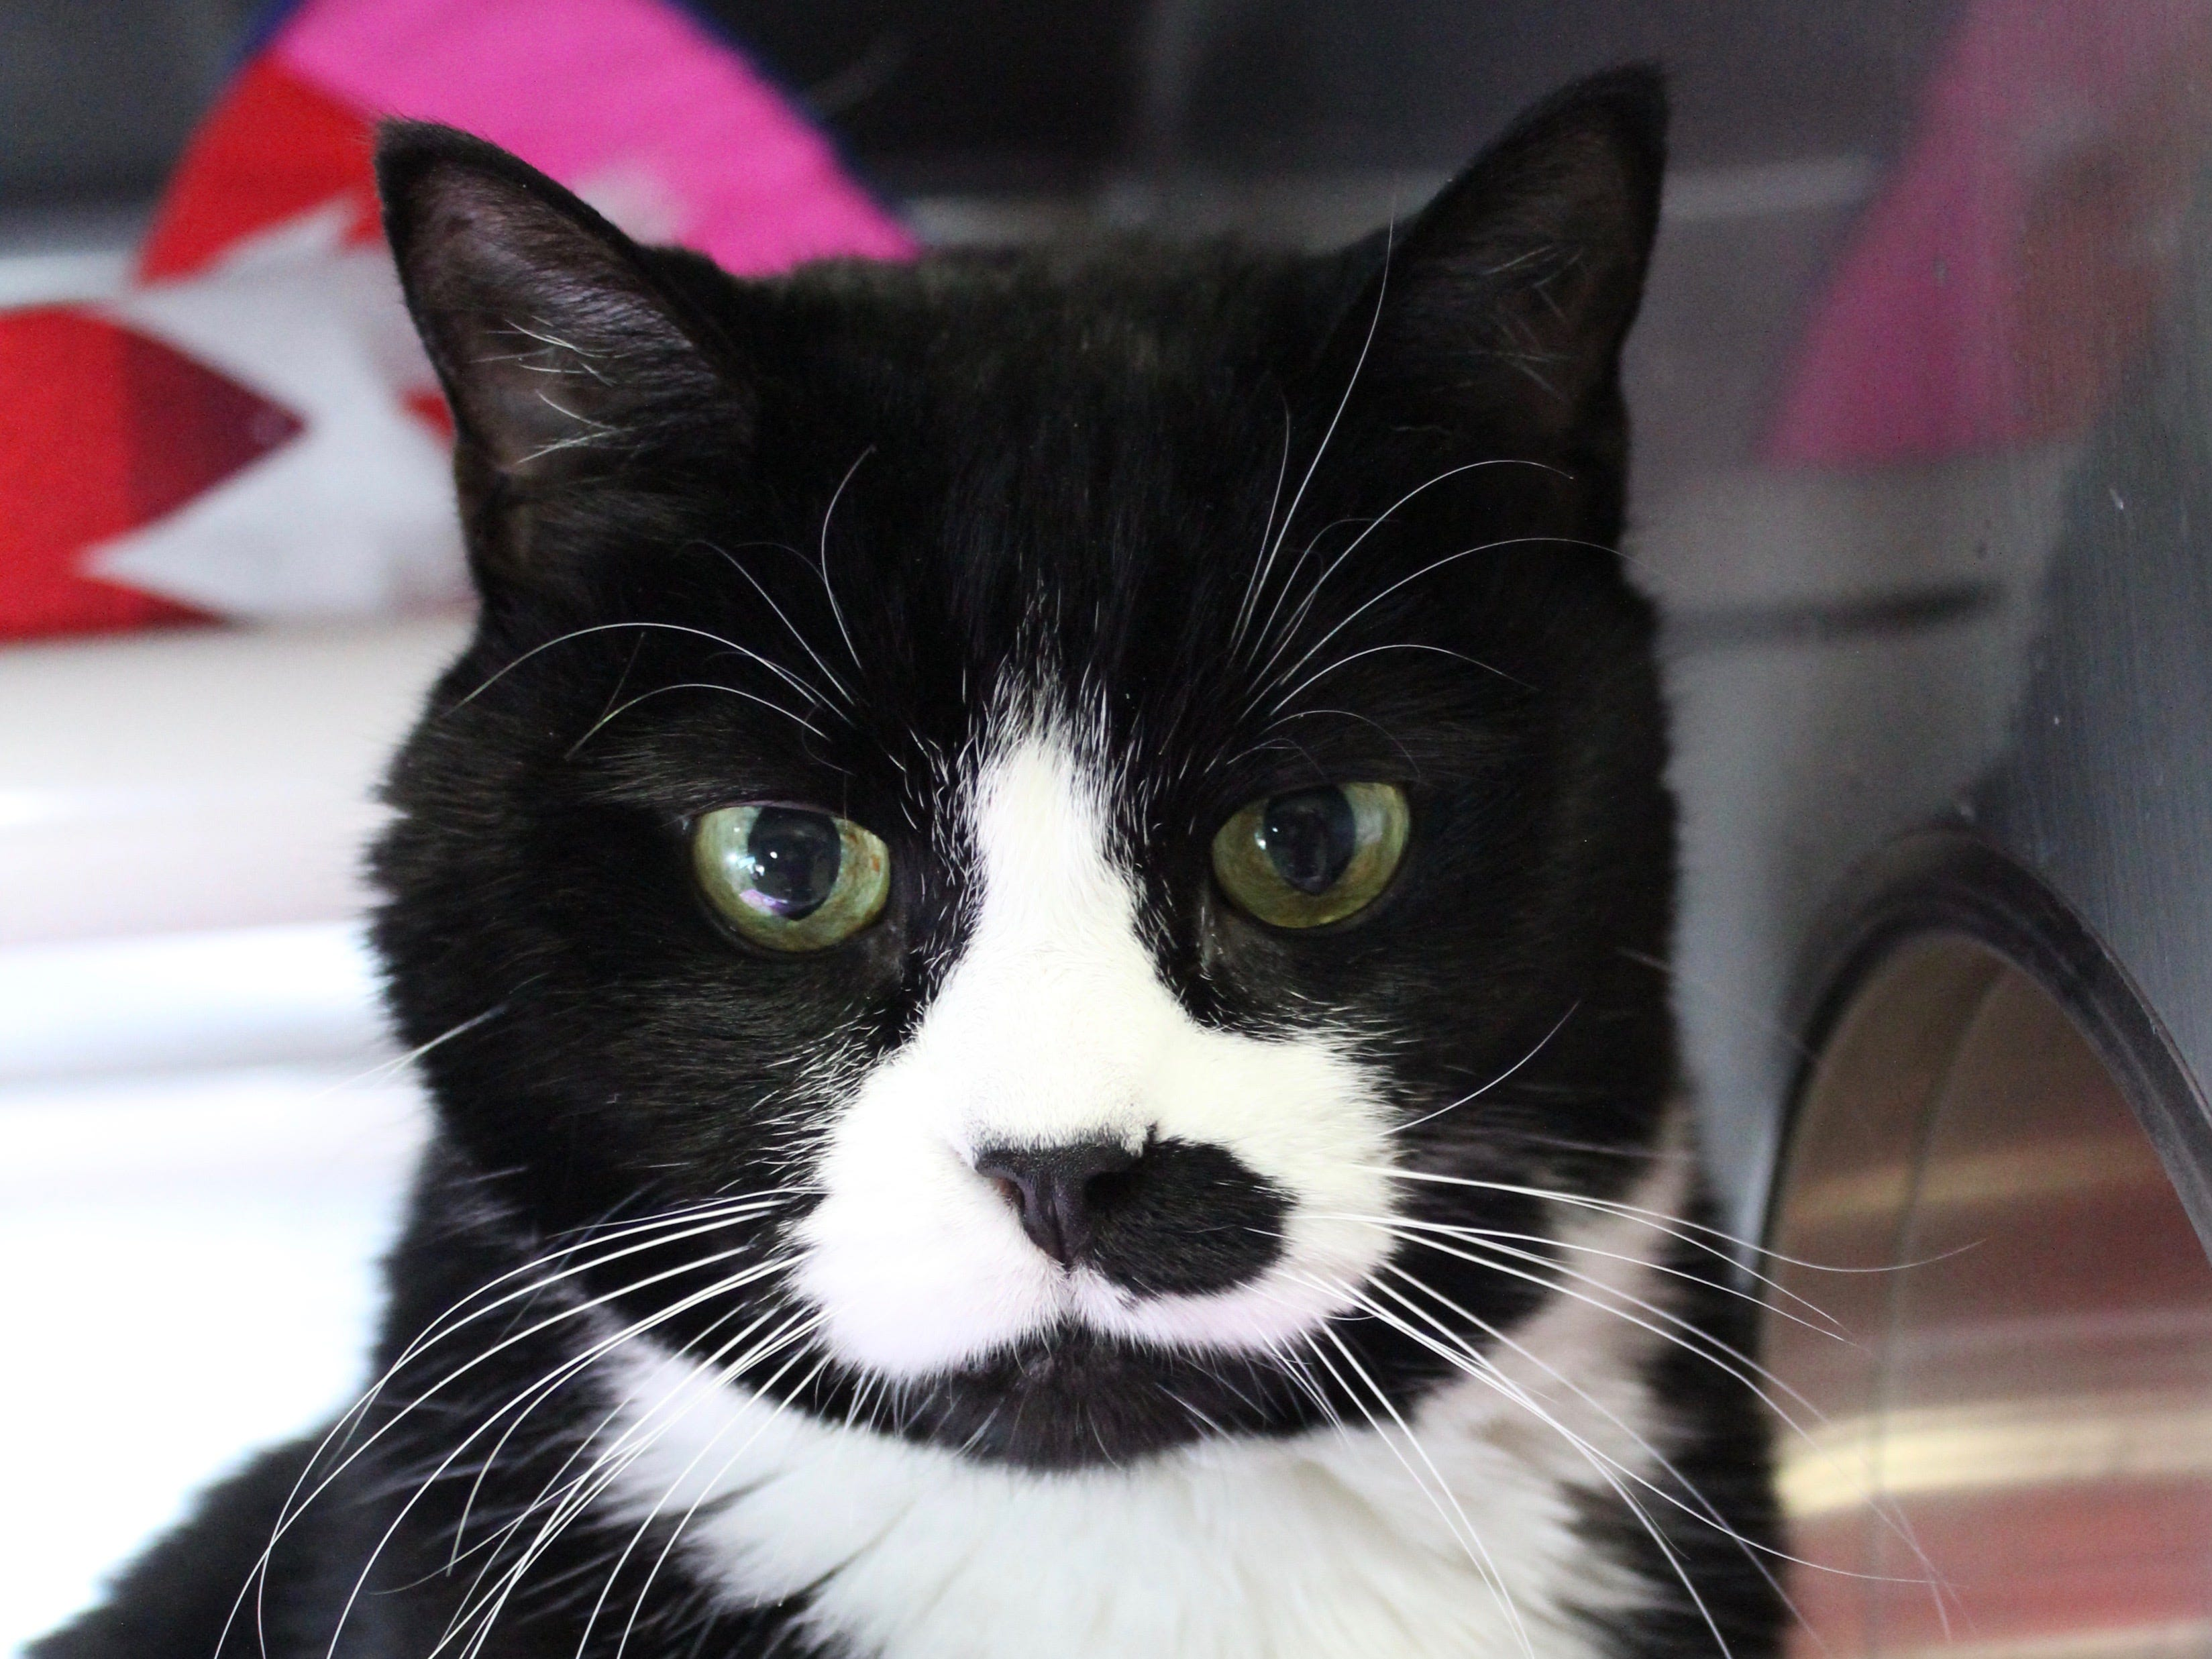 Sissy is a 12-year-old tuxedo kitty that was found as a stray cat in Salem. She is a confident and affectionate cat that can blend nicely into a home with other cats, and we think she'd do well with dogs too. Her favorite activity involves sitting on the lap of the person she loves. She can go home with kids 5 and older. To find out more about her, call Willamette Humane Society at 503.585.5900 or visit www.whs4pets.org.